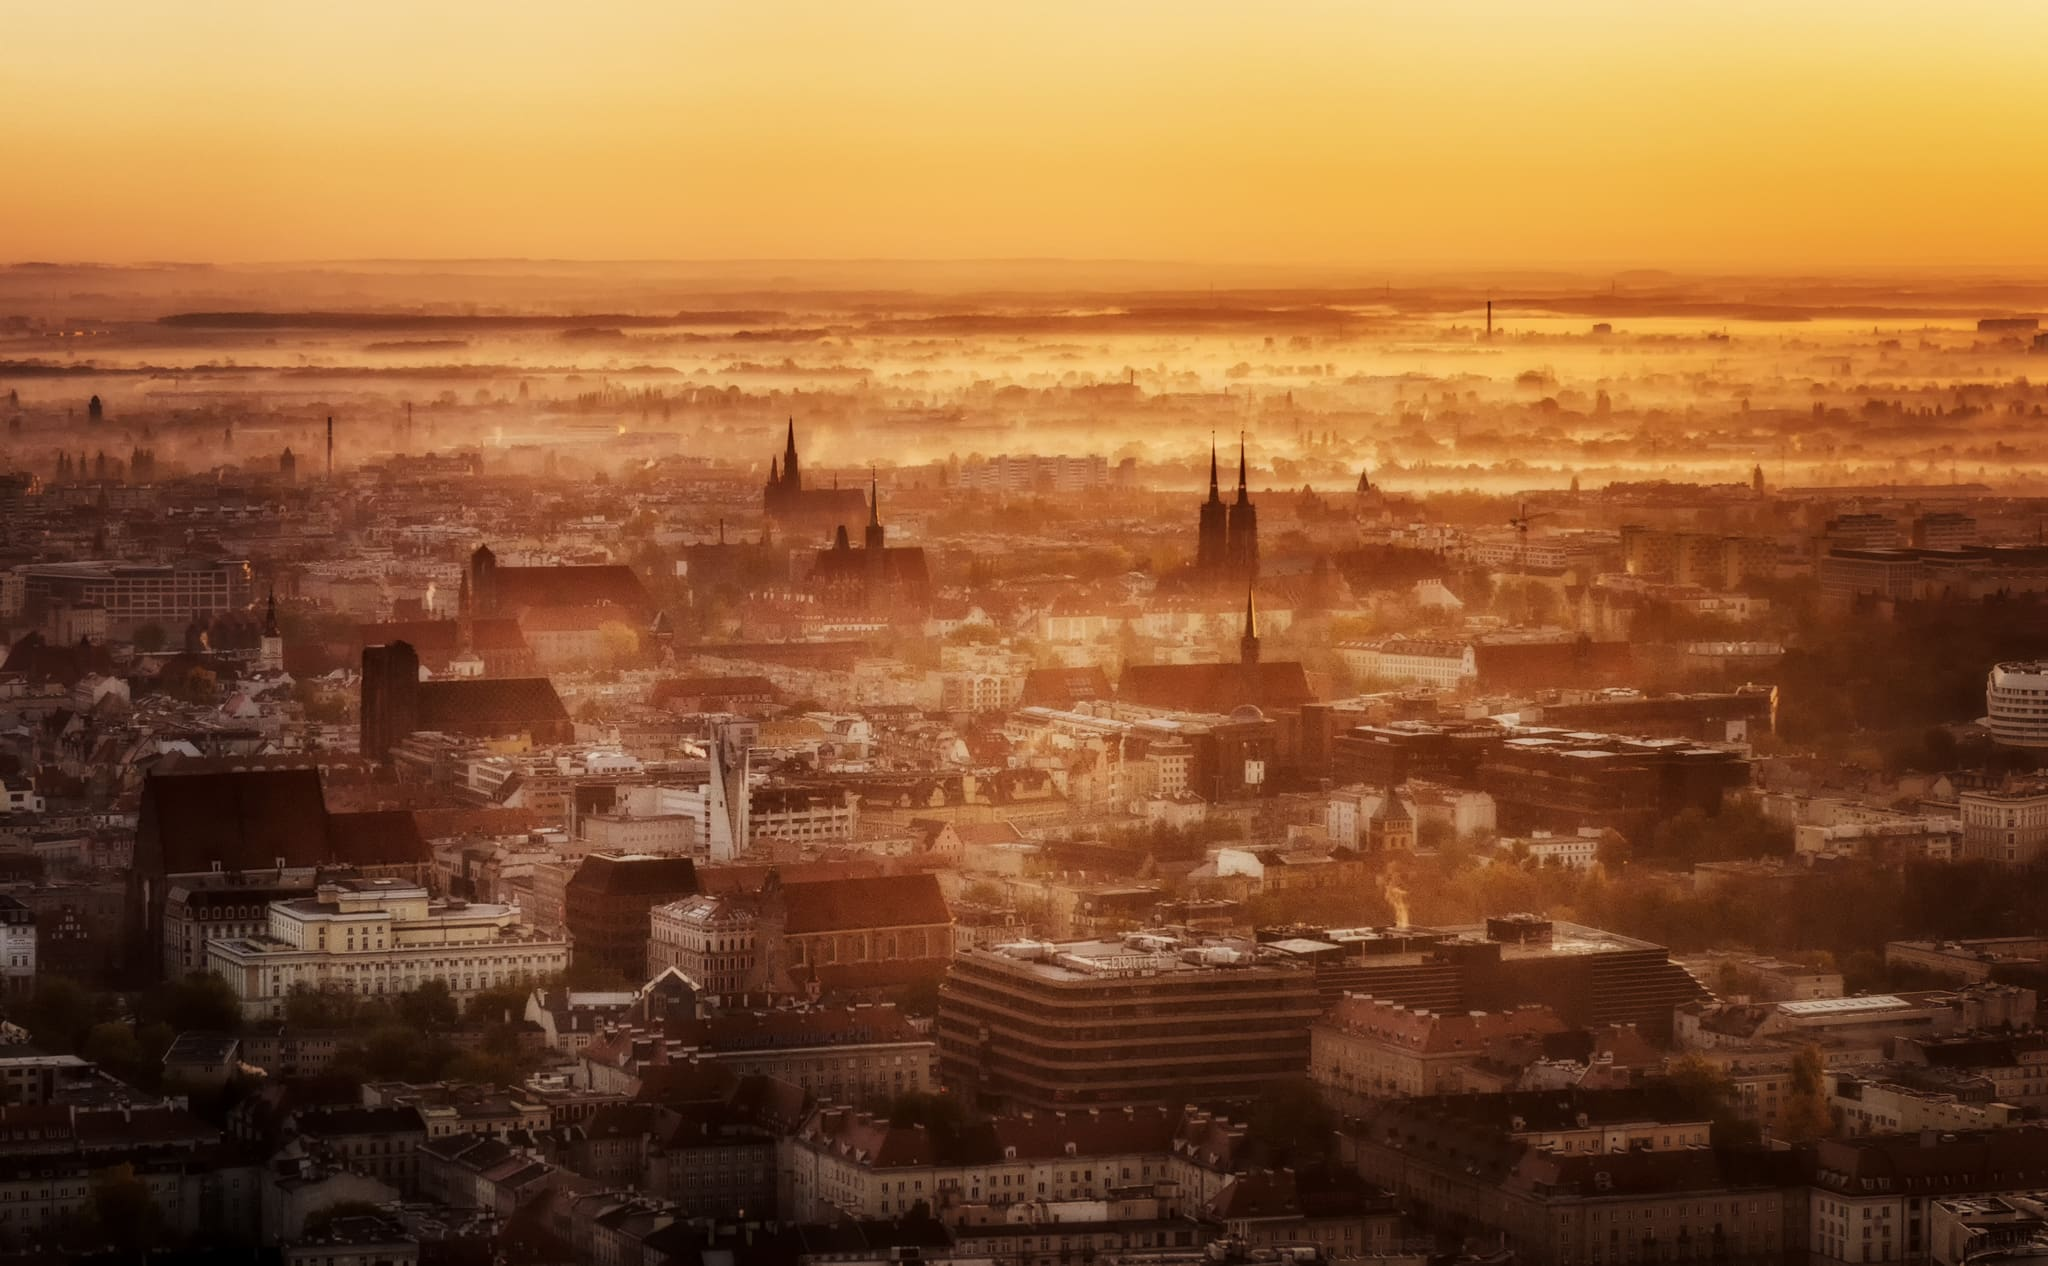 Wrocław in the fog - view from Sky Tower; Poland